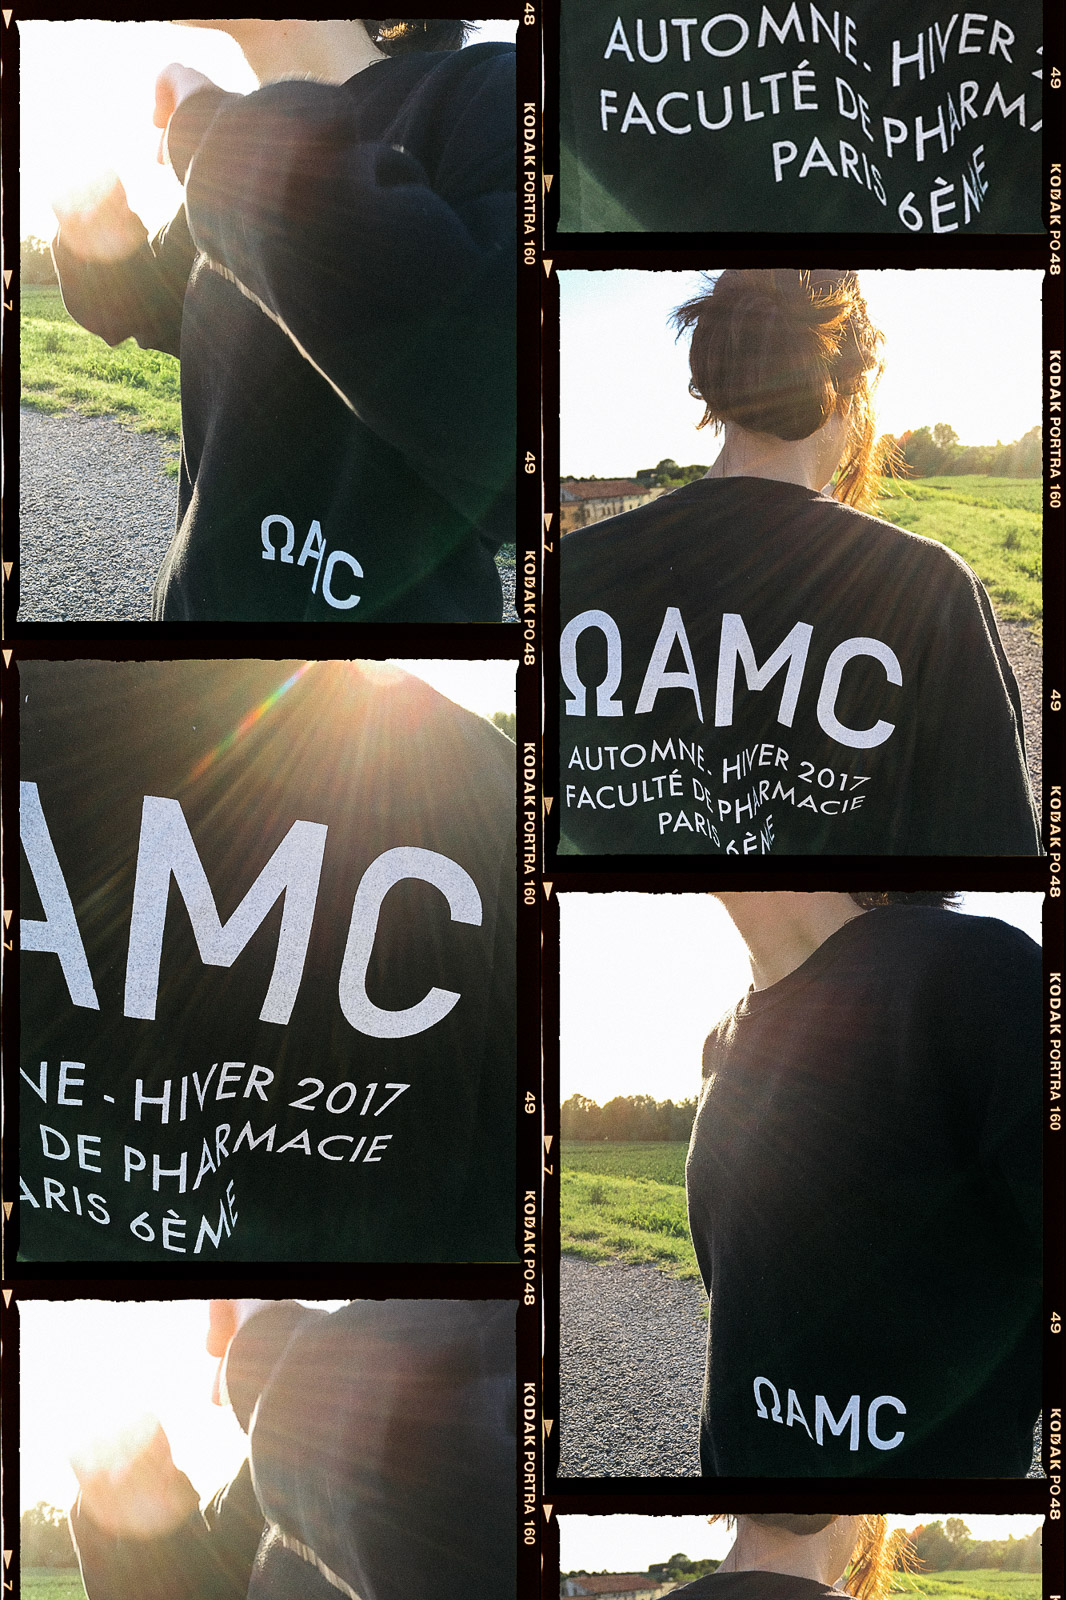 Favourite Streetstyle brand OAMC 35mminstyle